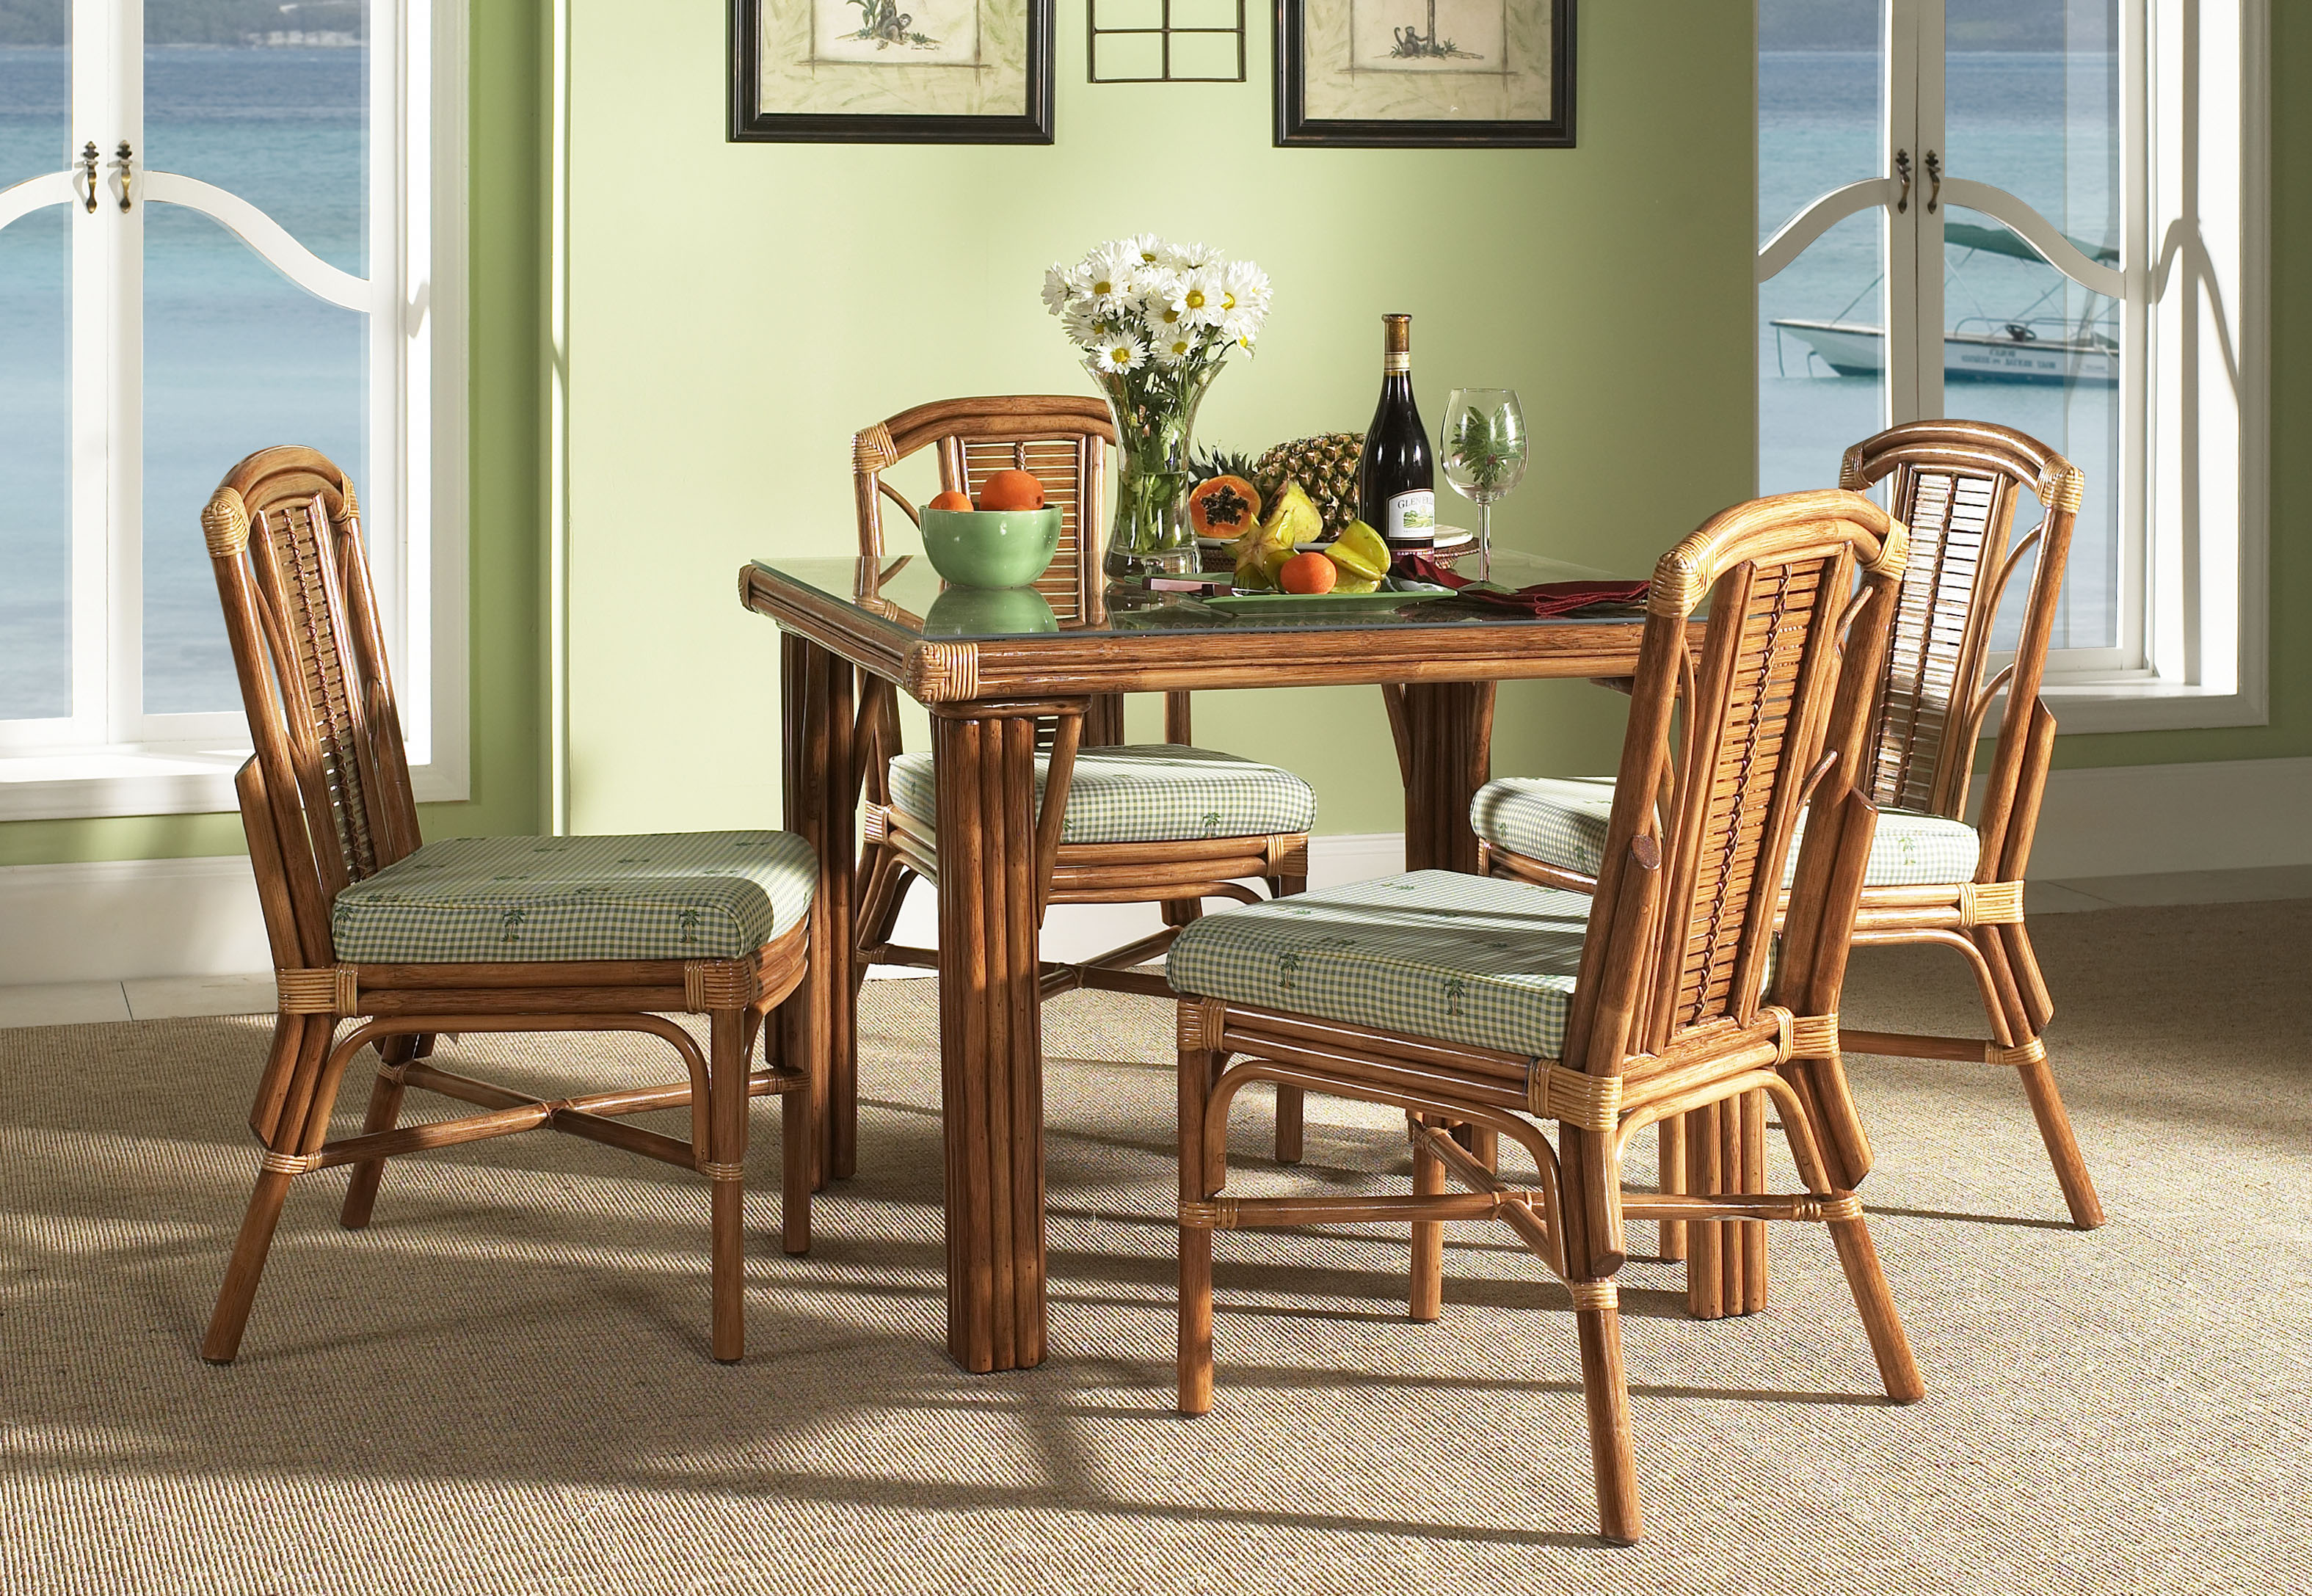 Indoor Wicker Dining Room Furniture - WickerCentral.com